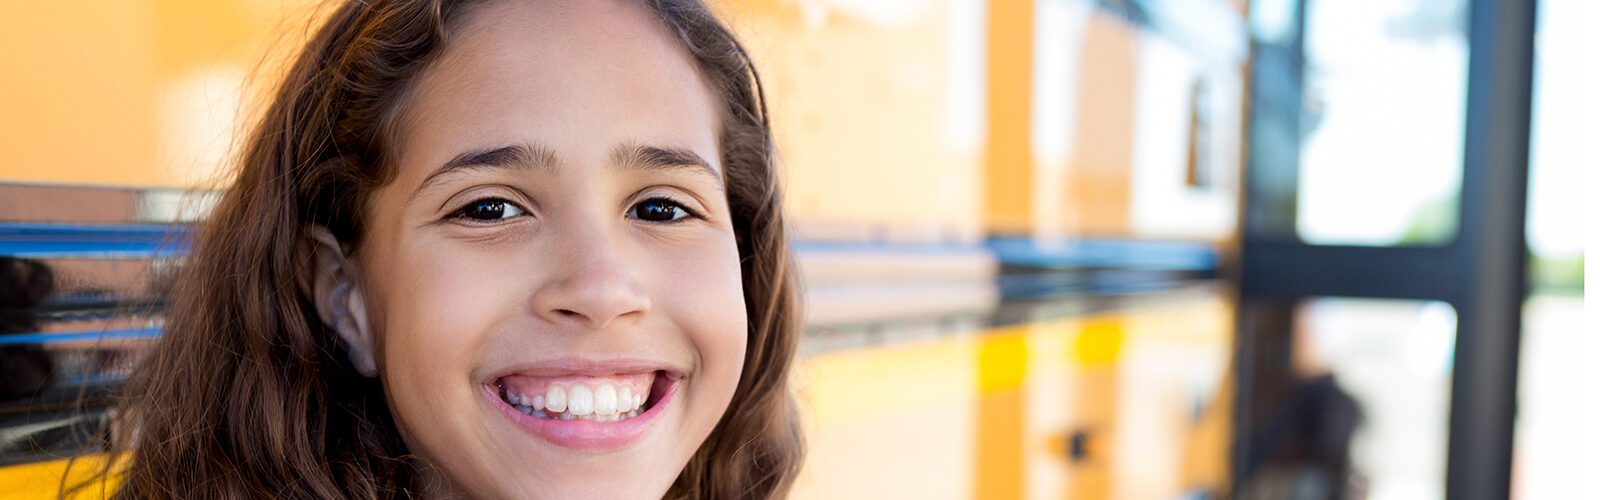 A young Latina girl smiles in front of a school bus